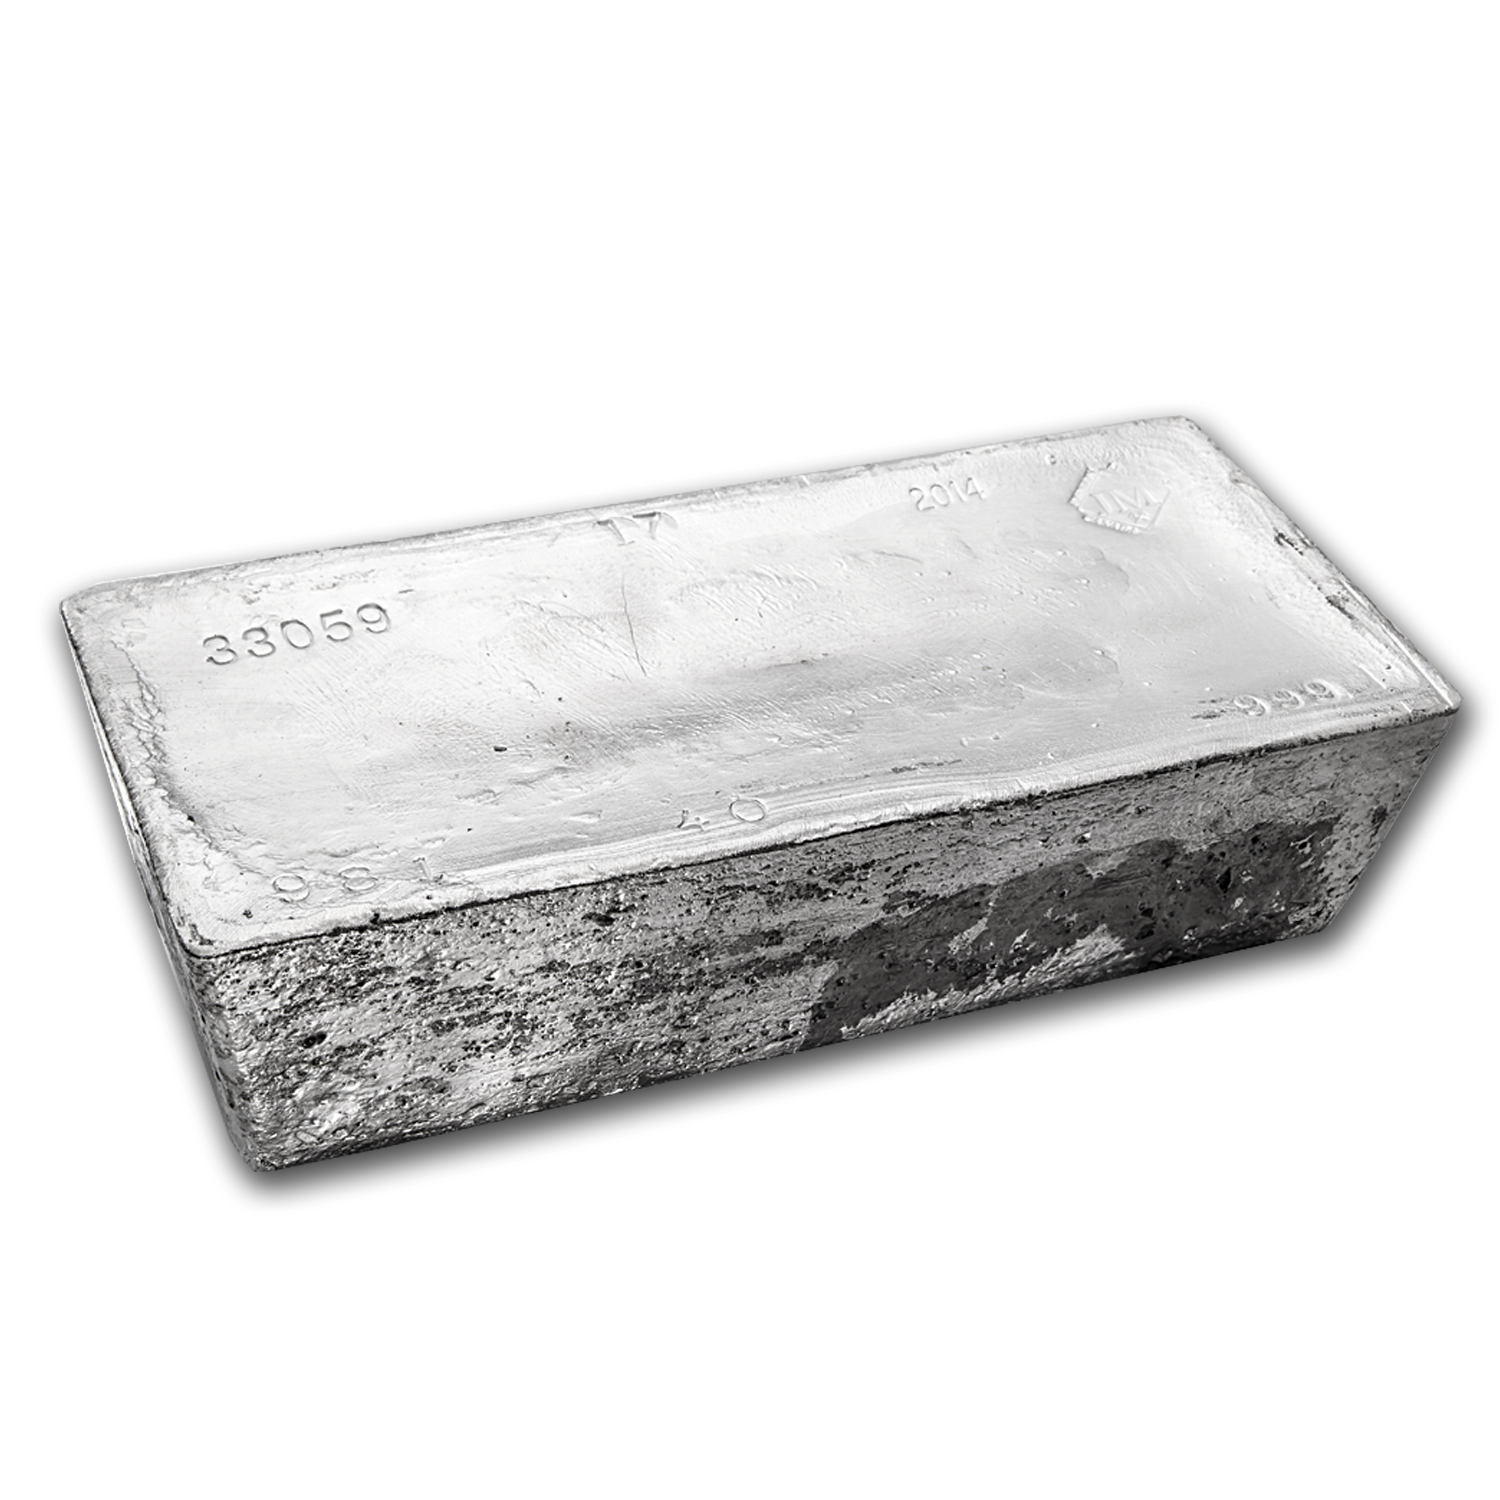 986.40 oz Silver Bar - Johnson Matthey